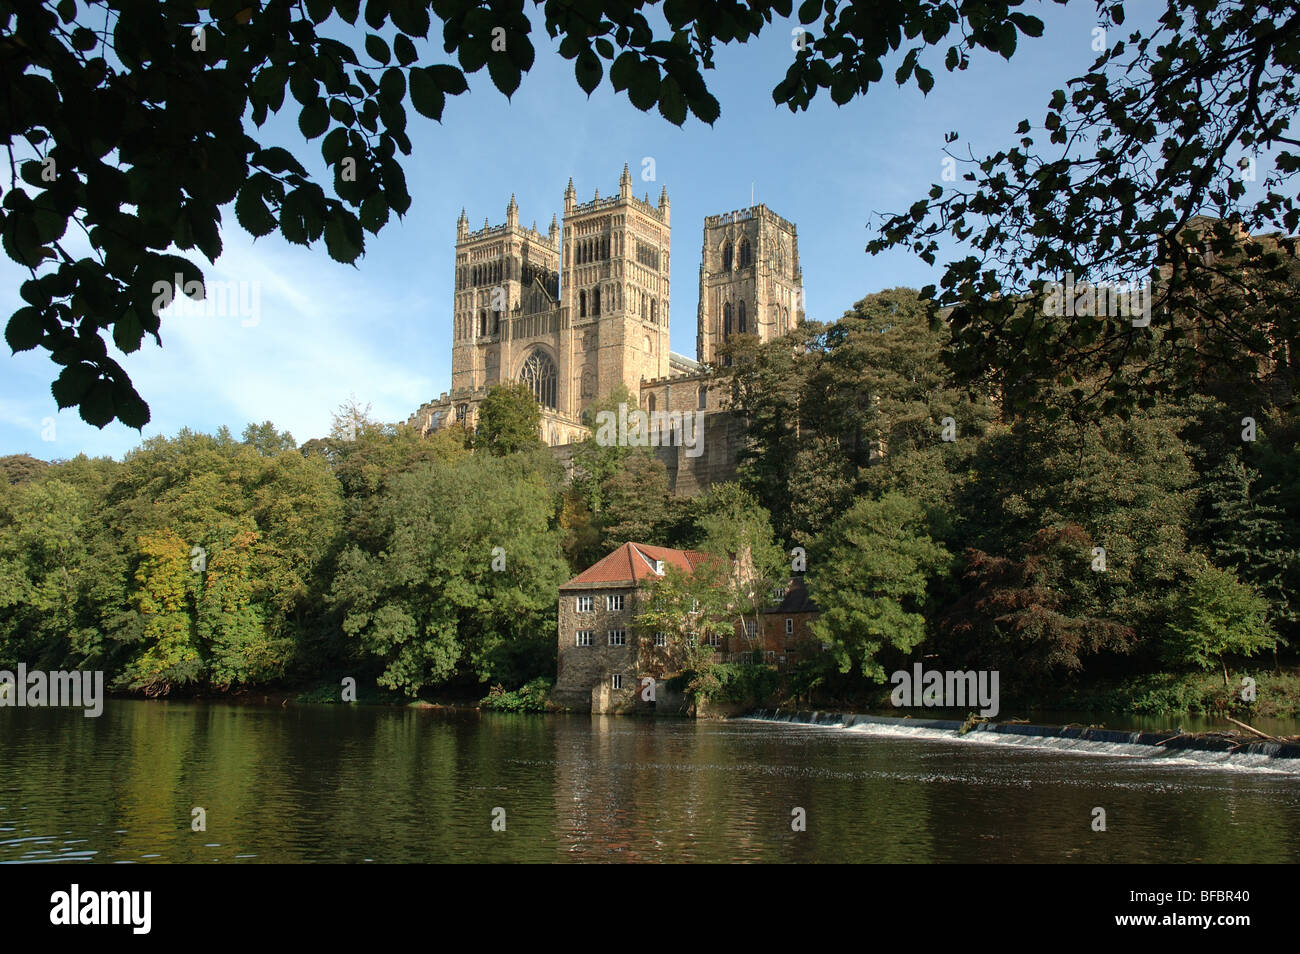 Durham Cathedral and the River Wear, Durham, England, UK Stock Photo